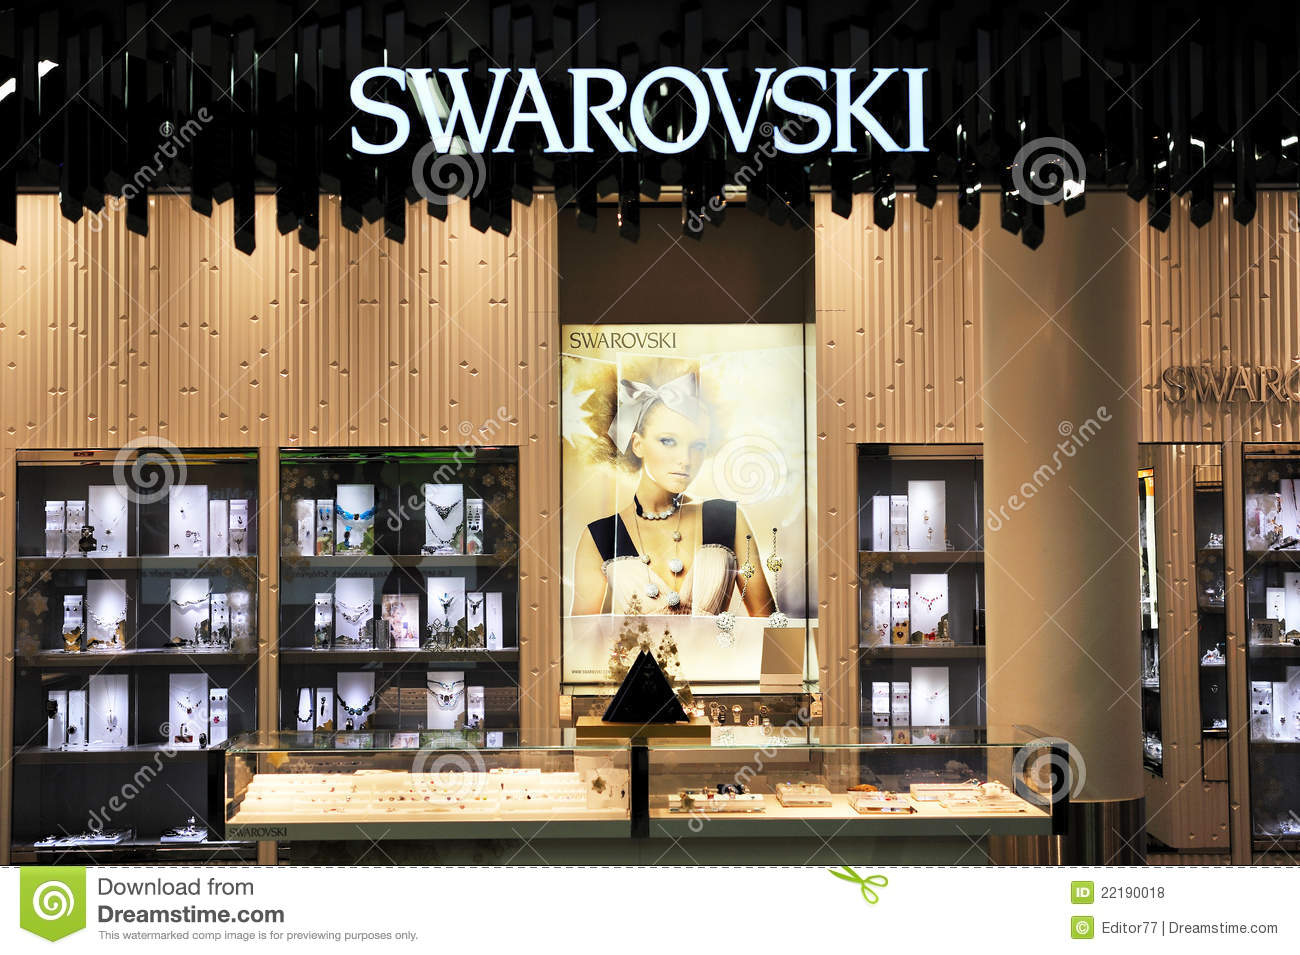 Swarovski Jewelry Store Illuminated Editorial Stock Photo - Image of ... 9cbd74acd6